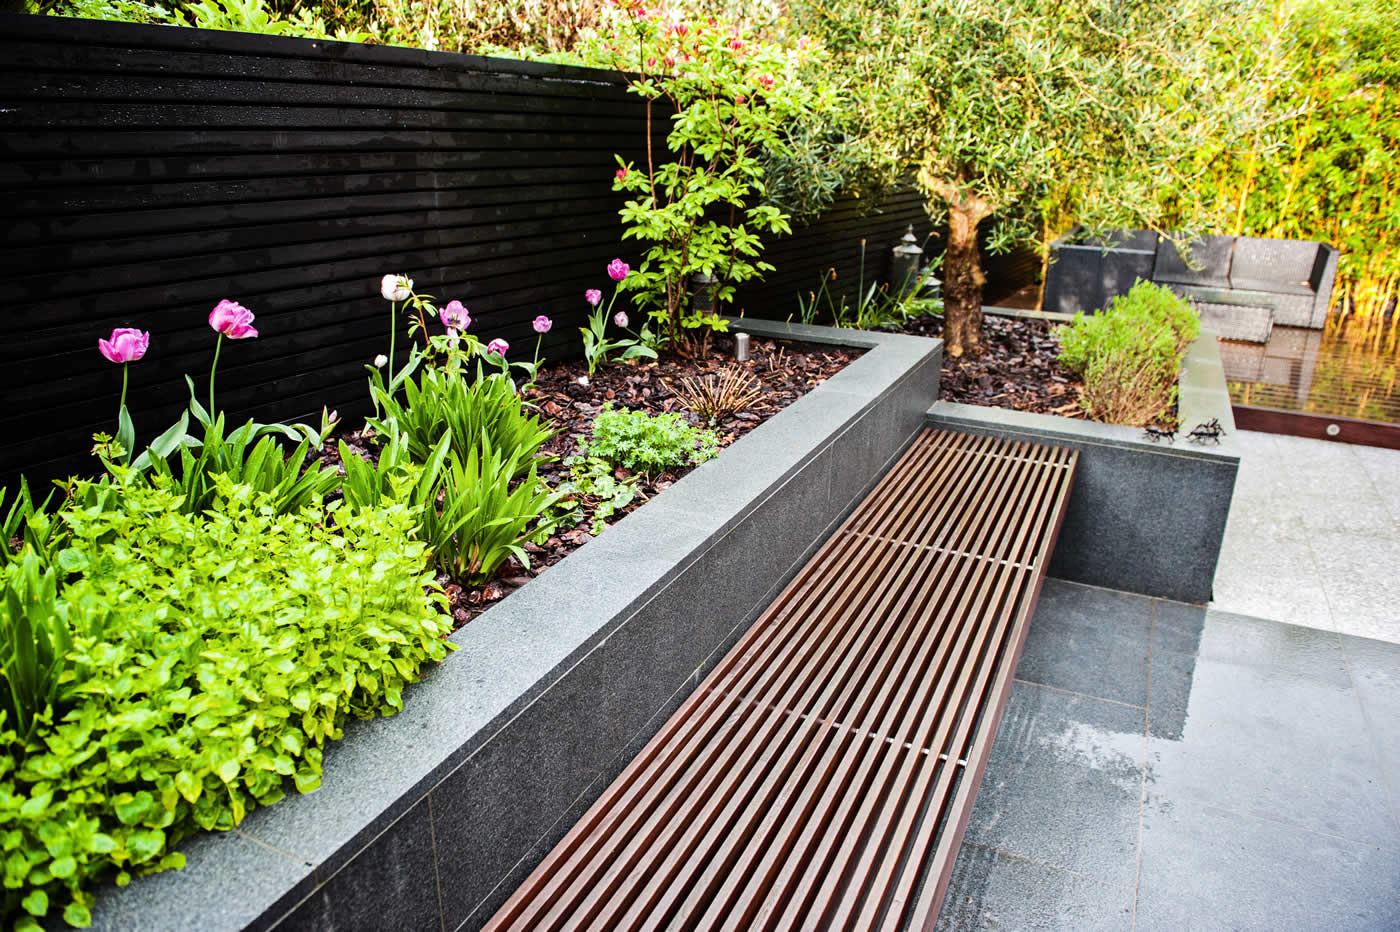 Chic modern garden design in chelsea by declan buckley with steps and - Contemporary Garden Ascot